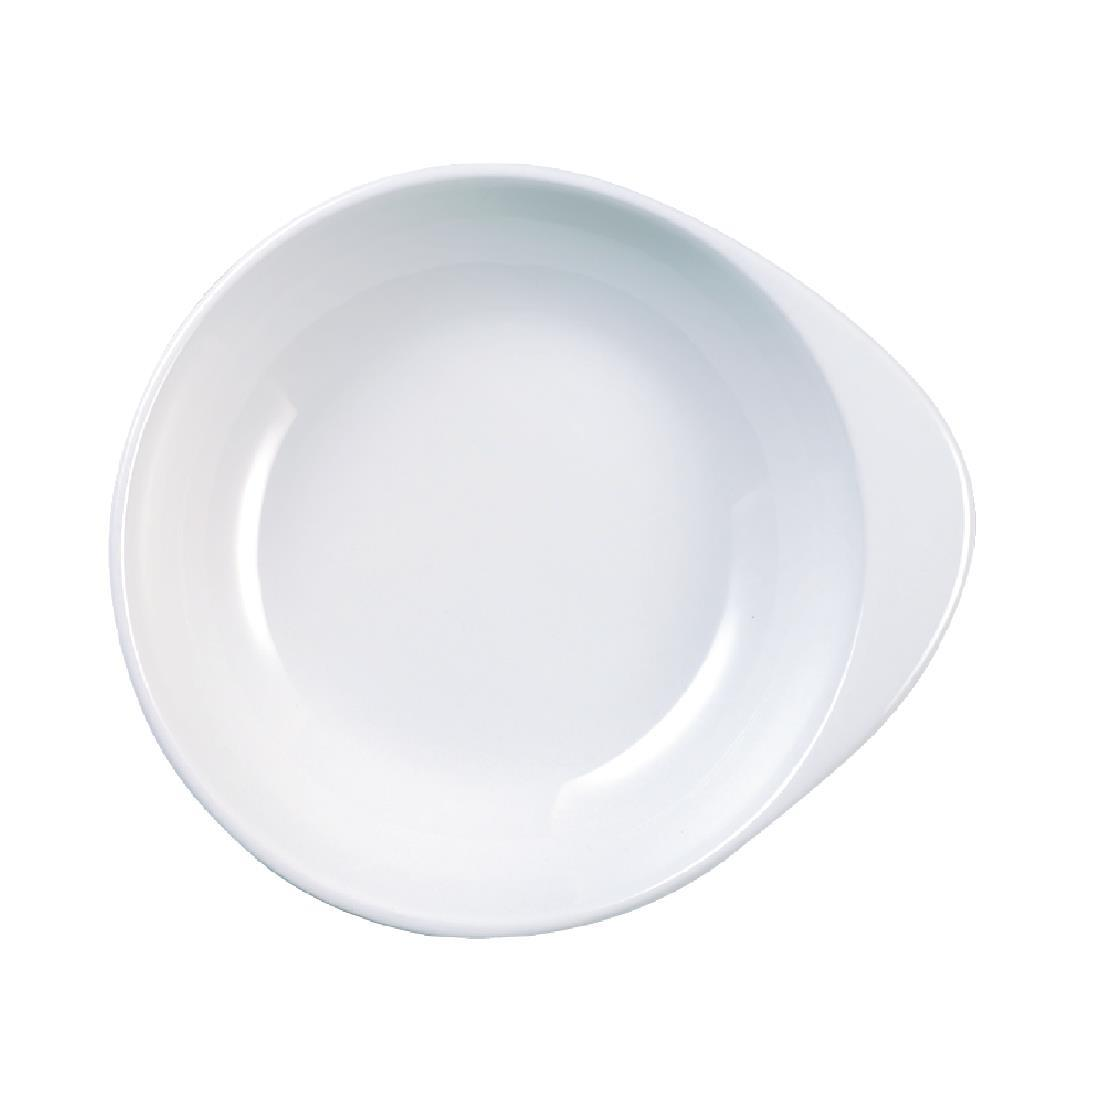 W588 - Alchemy Cook & Serve Round Dish